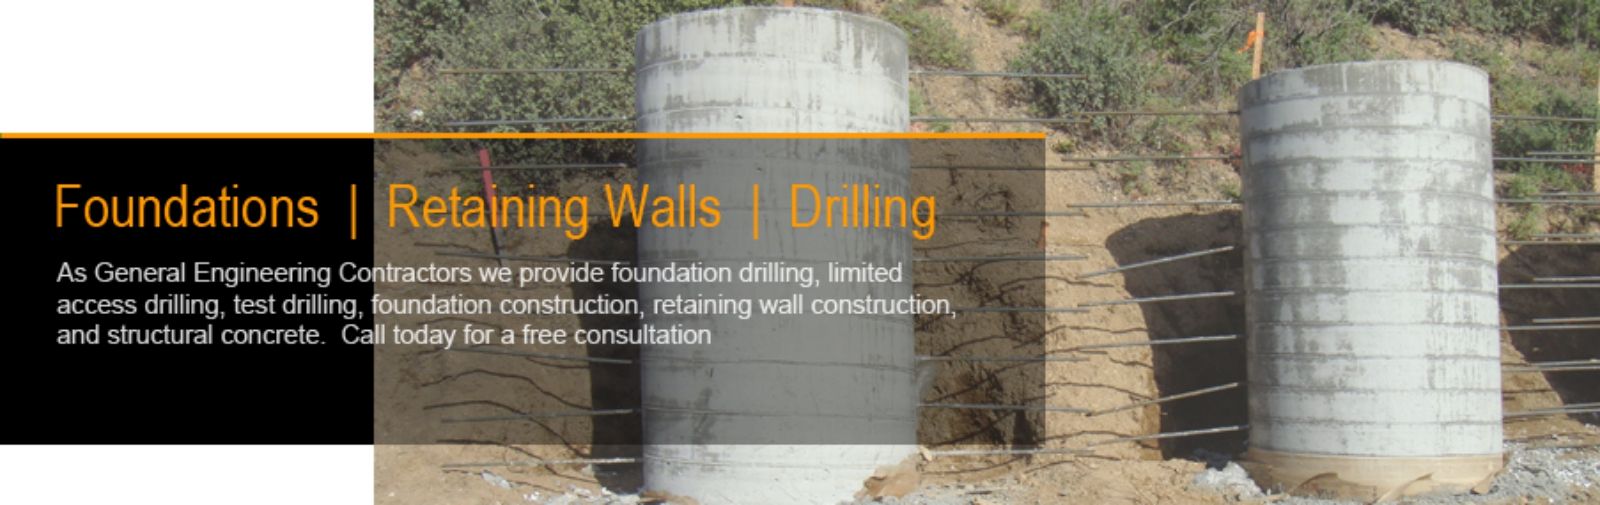 Los Angeles Foundation Contractor Drilling Grading